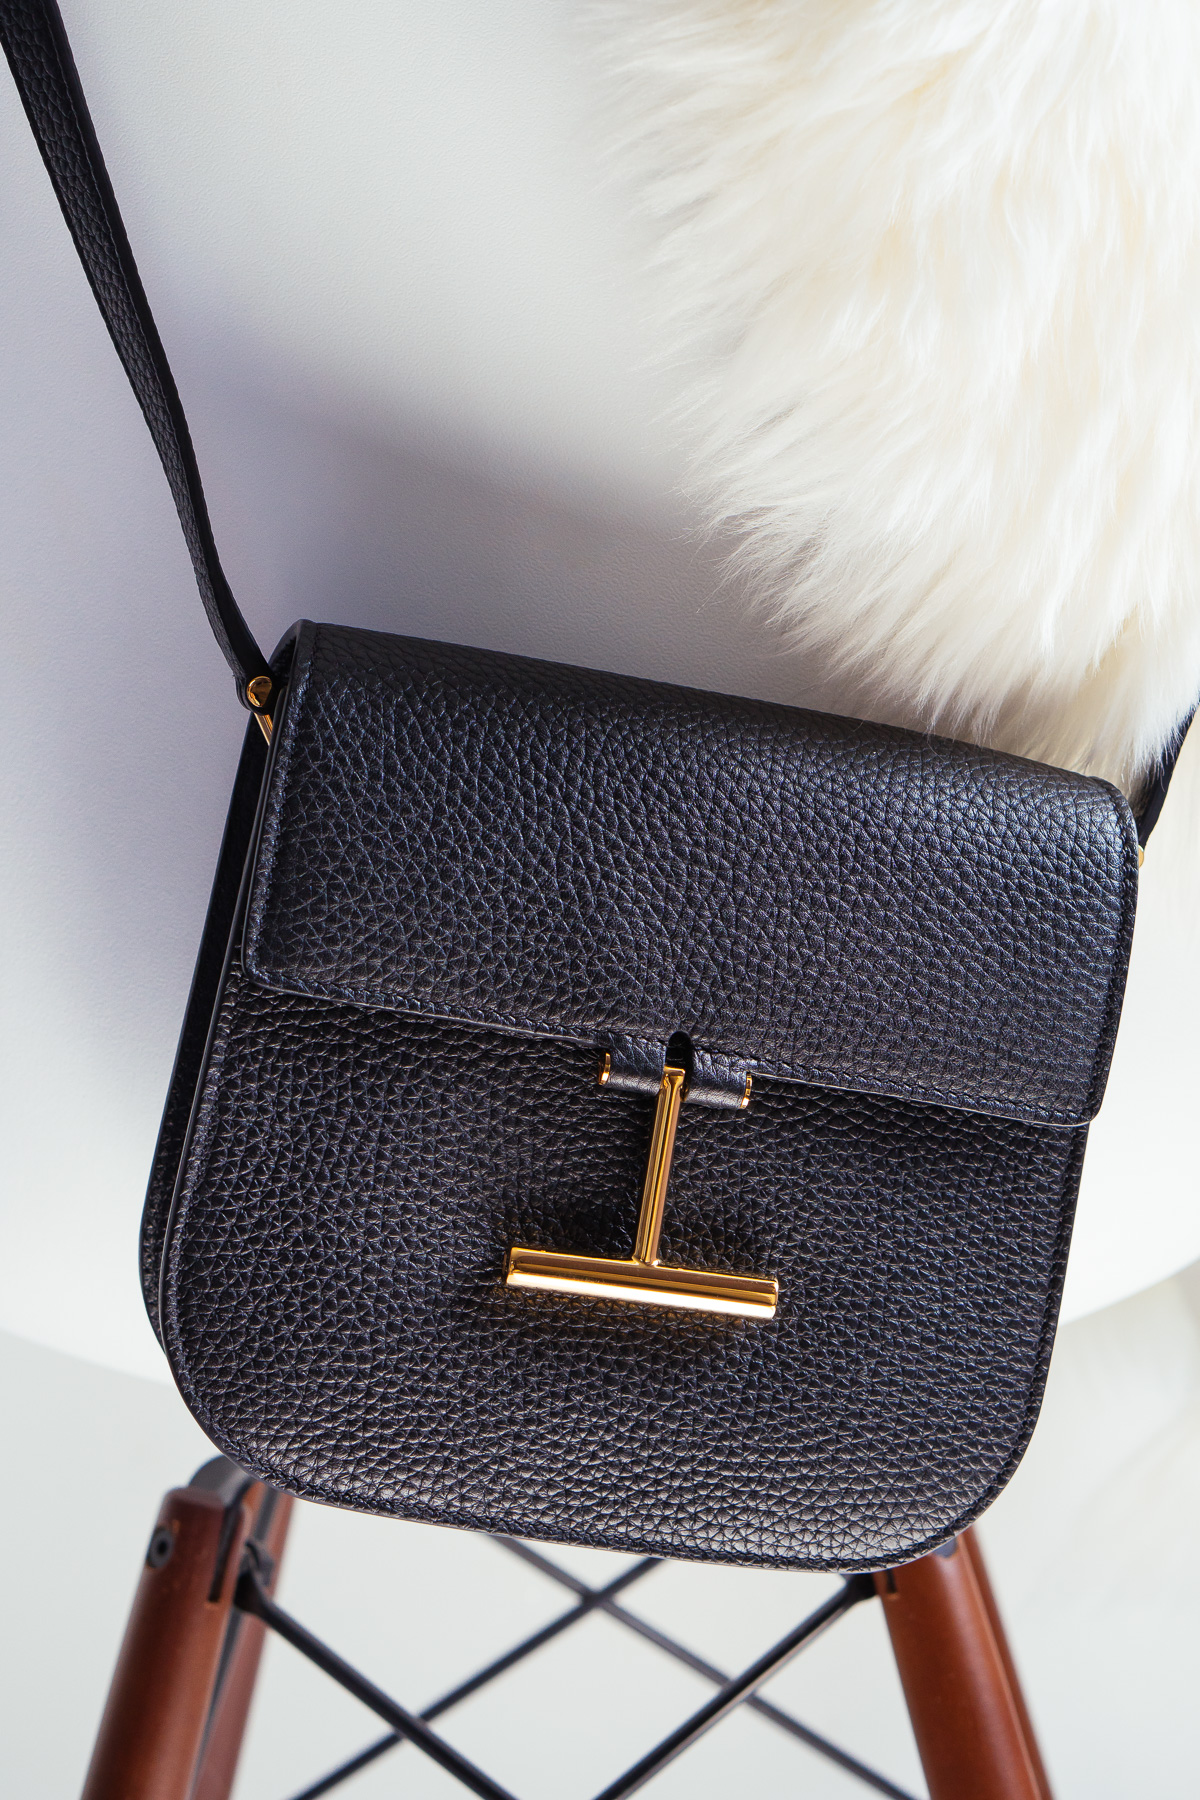 Among All Of The Share Worthy Bags Bombarding Our Feeds And Online Ping Searches However Tom Ford Tara Crossbody Bag Is Not One To Be Missed